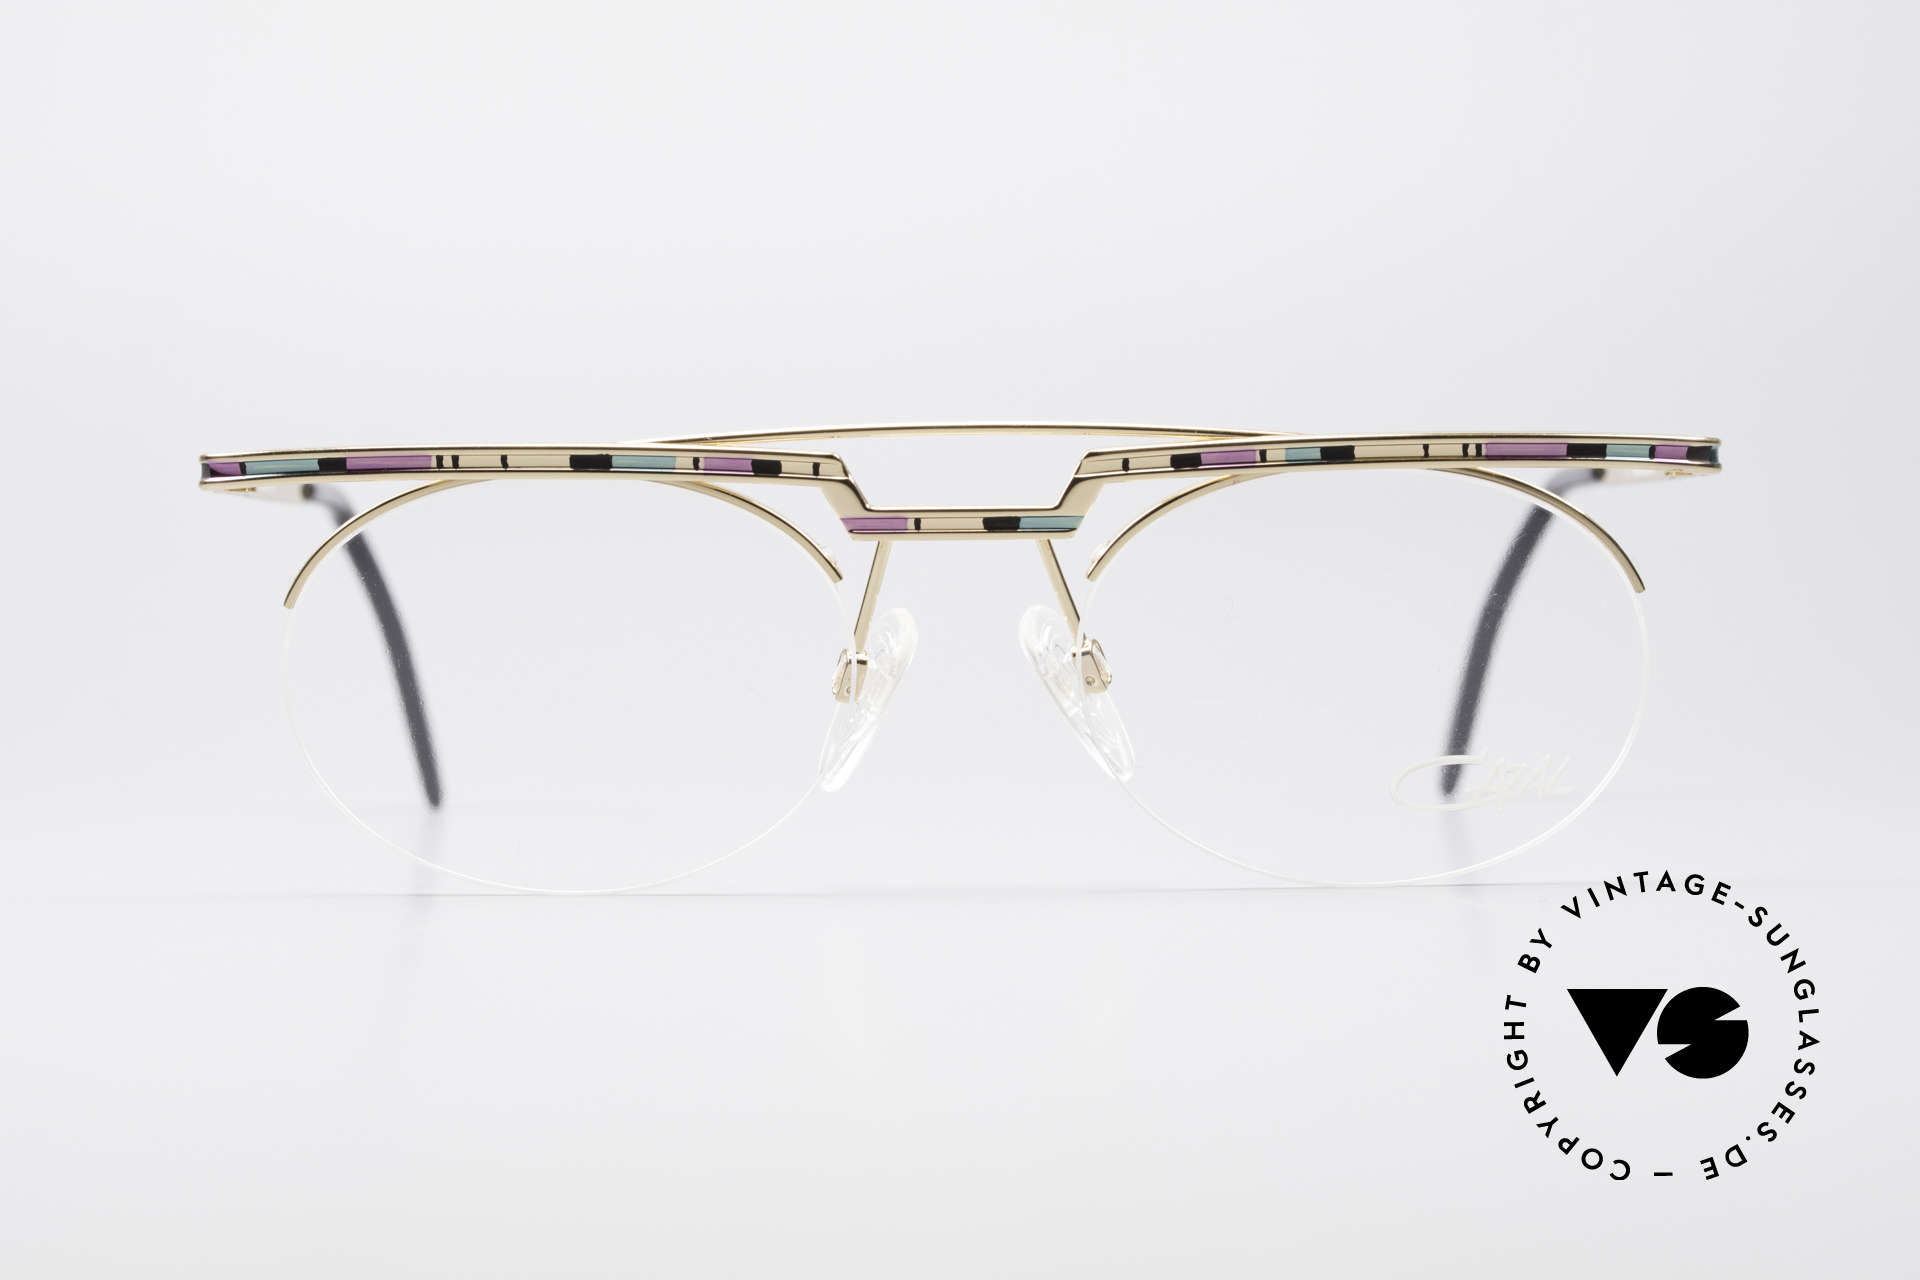 Cazal 758 Original Glasses No Retro Frame, great geometrical play (oval & square, at the same time), Made for Men and Women